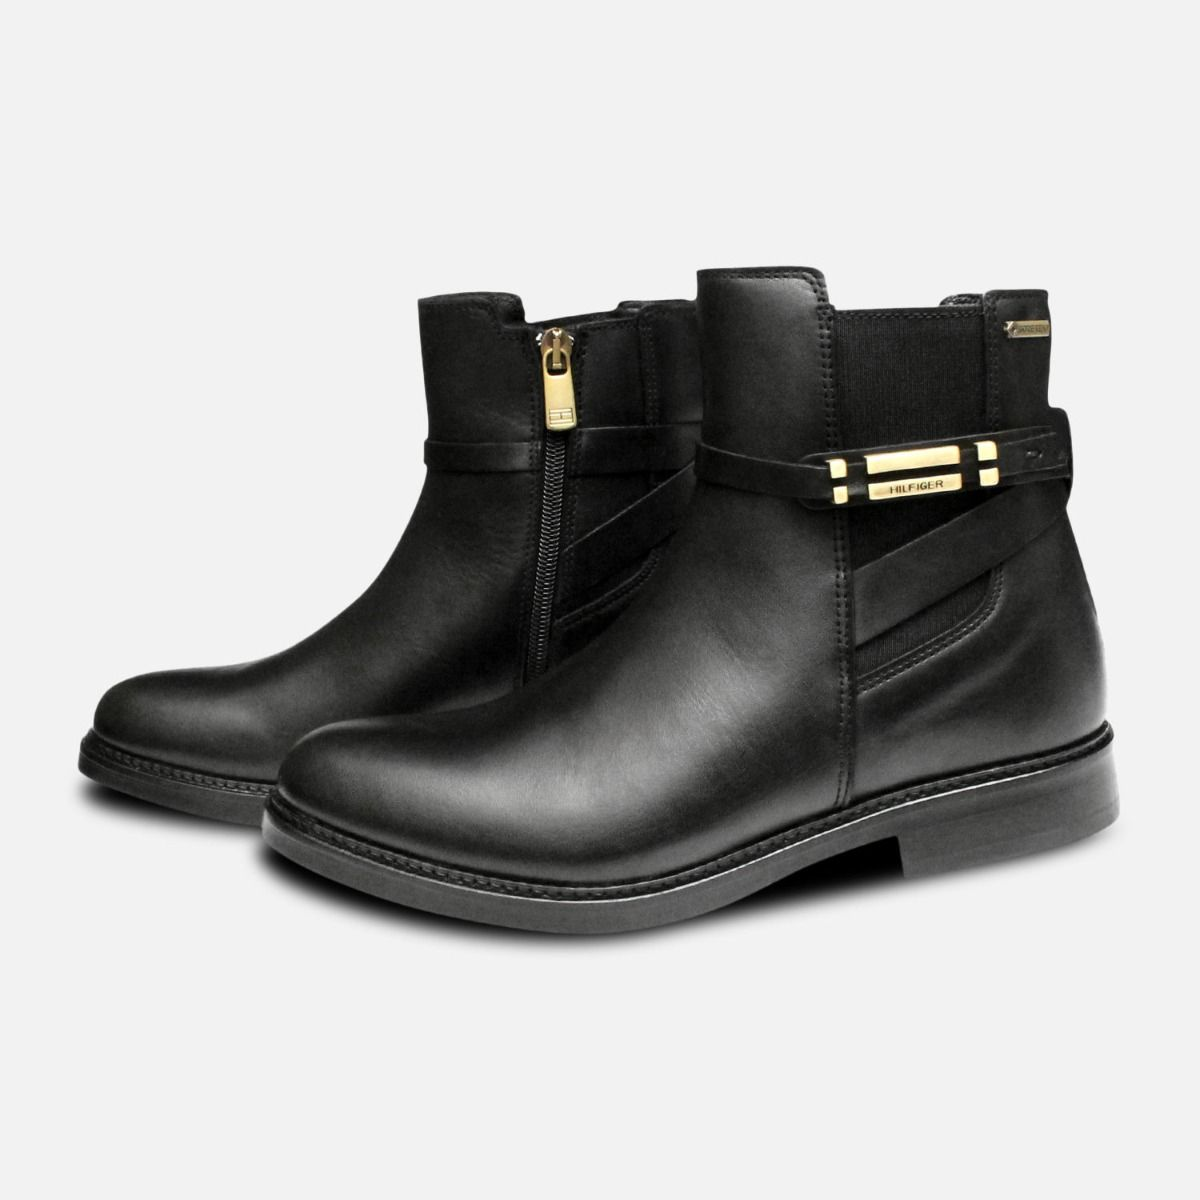 Waterproof Tommy Hilfiger Black Holly Chelsea Boots